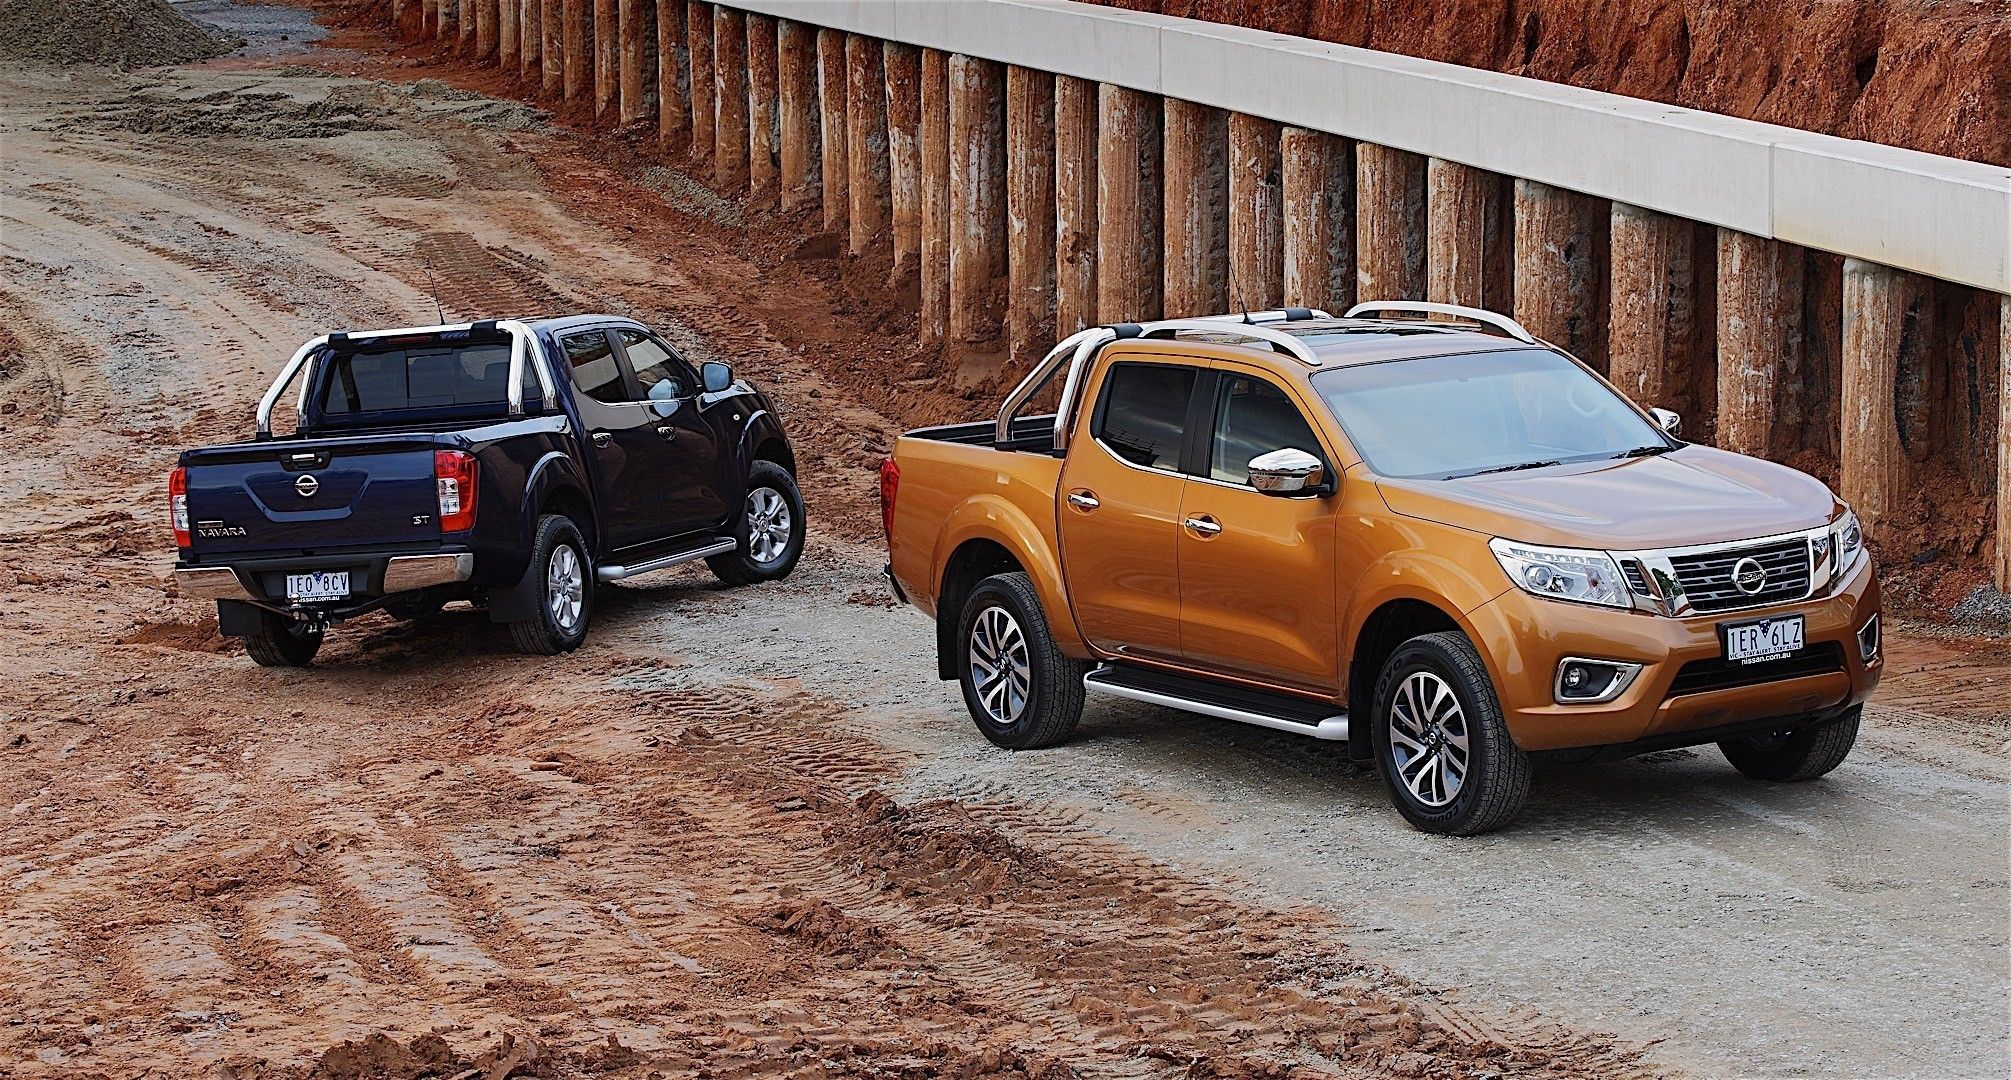 2020 Nissan Xterra Redesign (With images) Nissan xterra